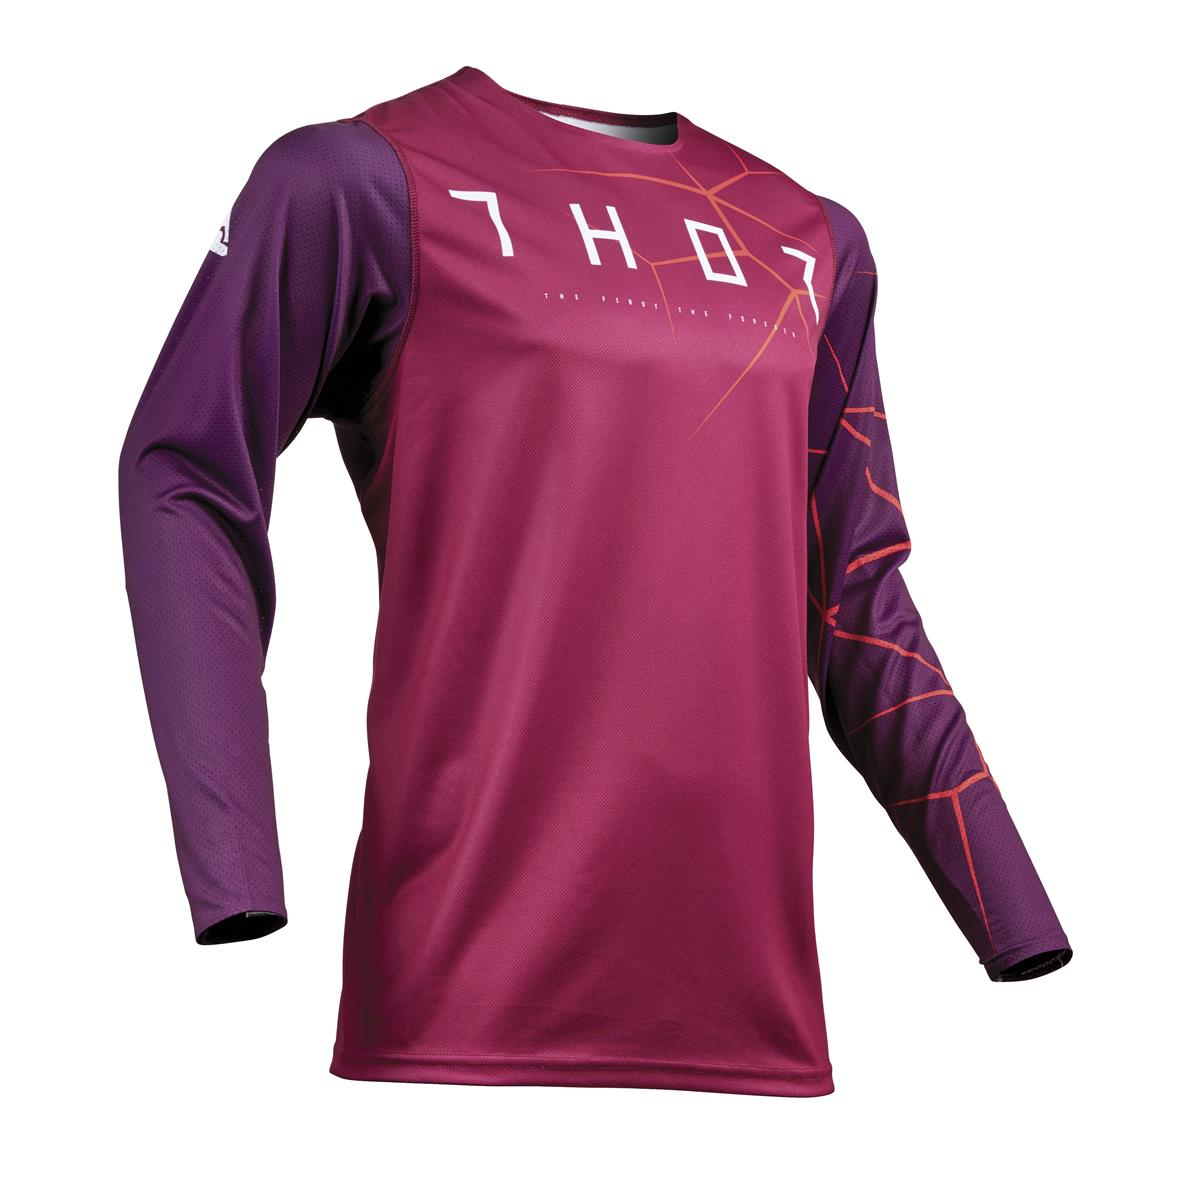 Thor Jersey Prime Pro Infection - Maroon/Rot Orange